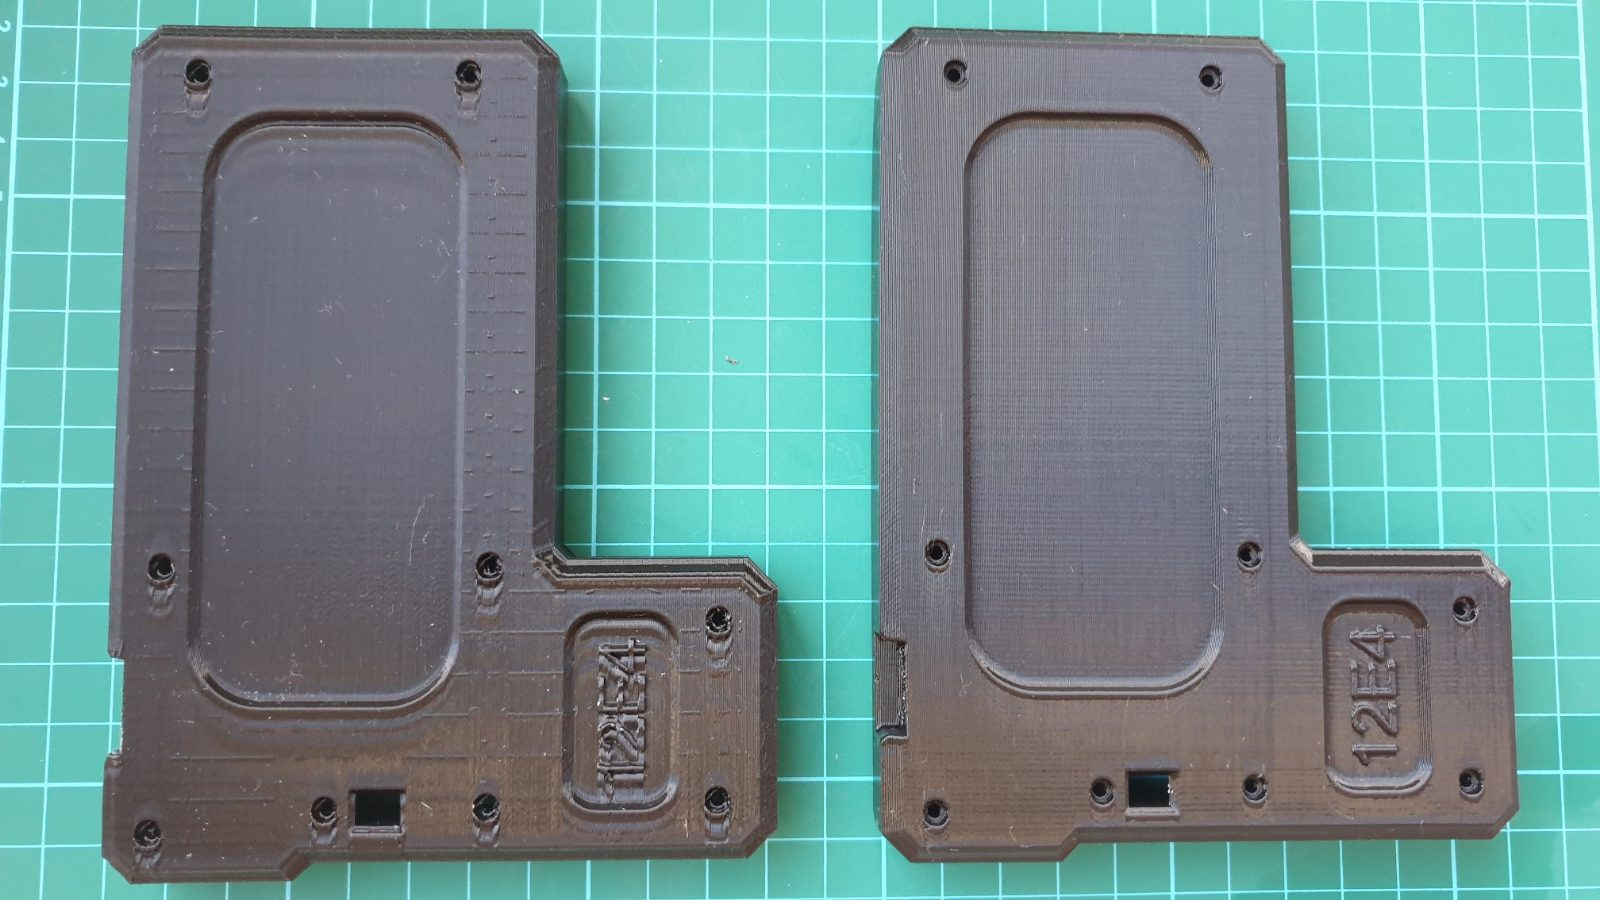 Correcting 'Ghosting' Issue in Prusa MK3S+ Printouts